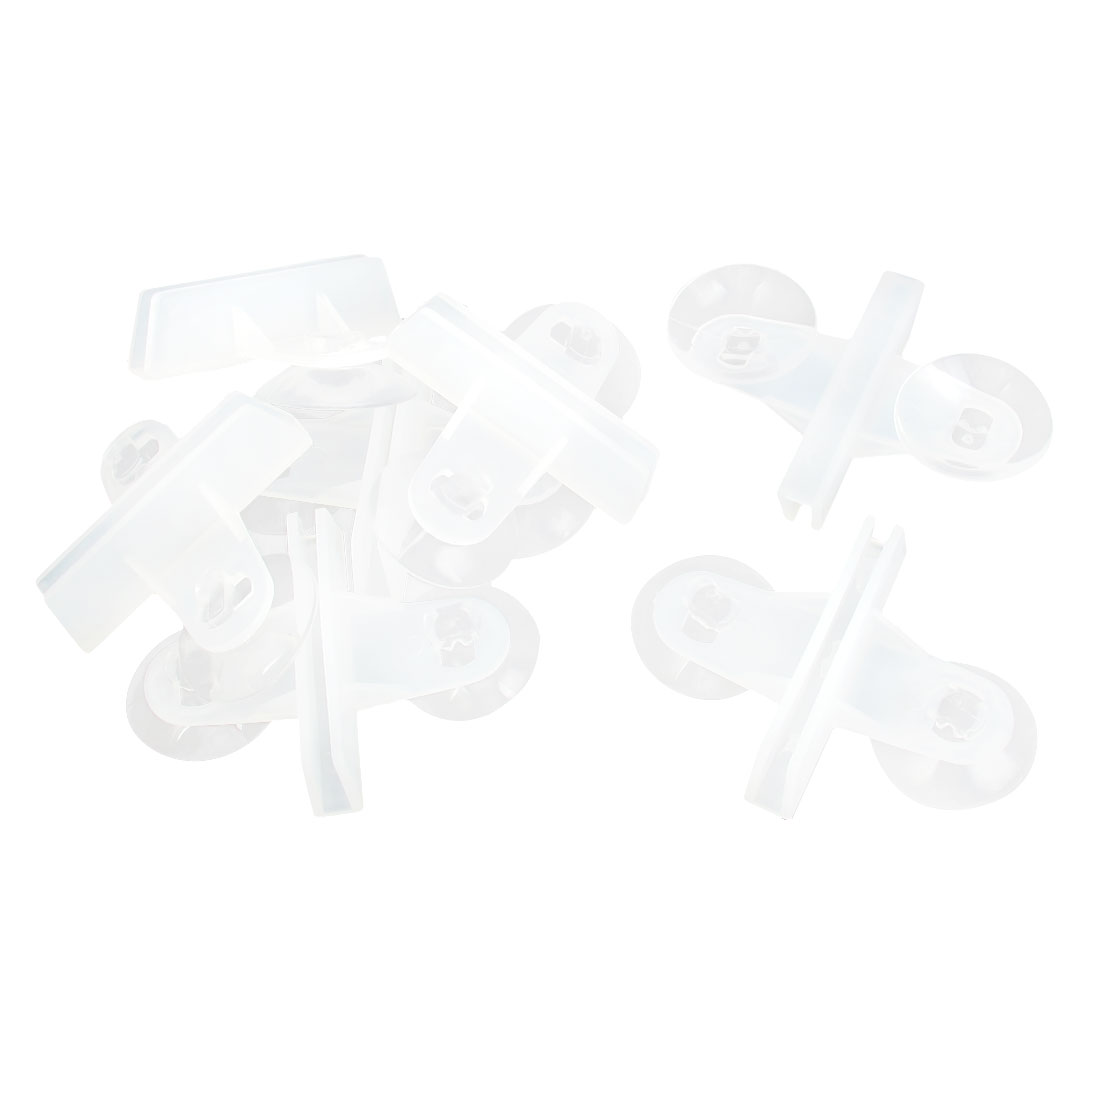 7pcs White Plastic Dual Suction Cup Divider Sheet Glass Clip Support Holder for Aquarium